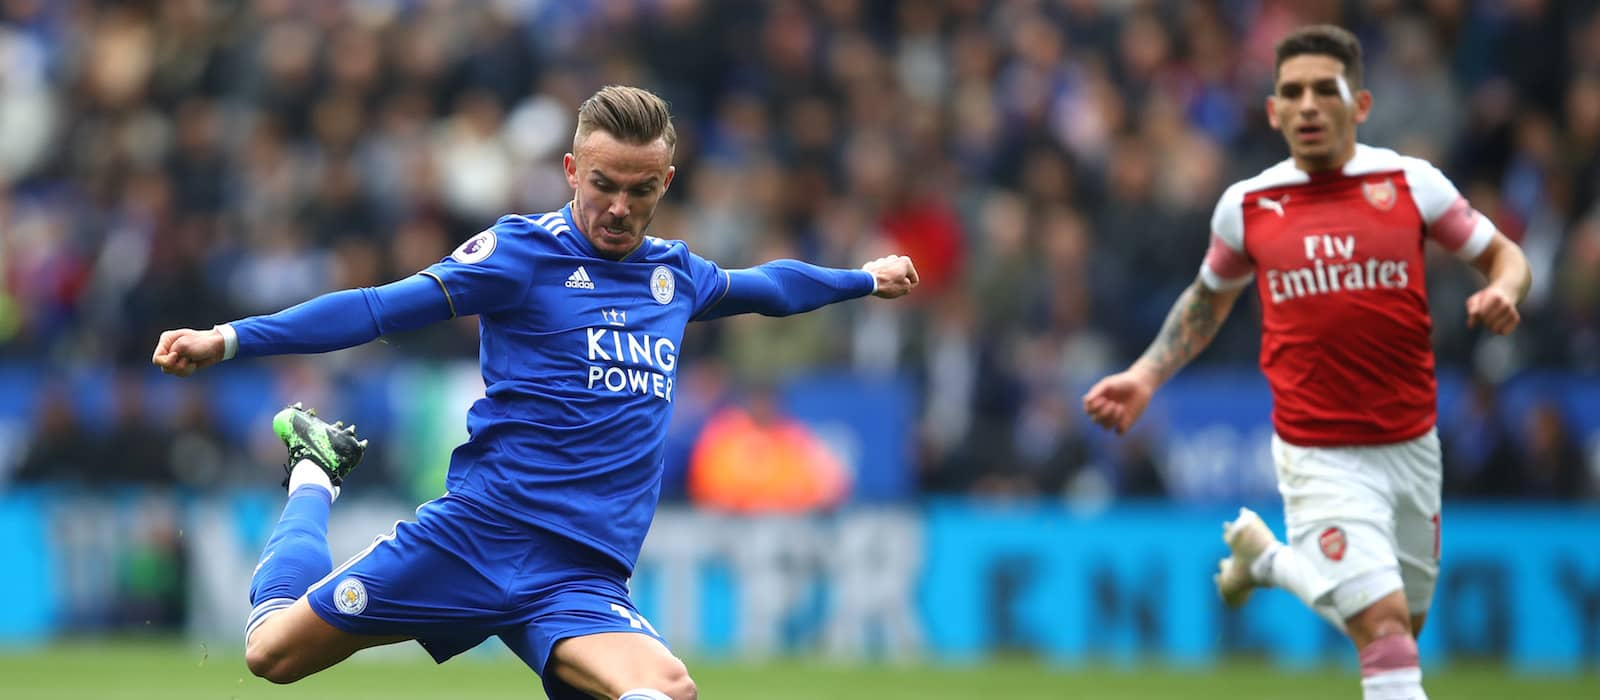 James Maddison pushes for move to Manchester United